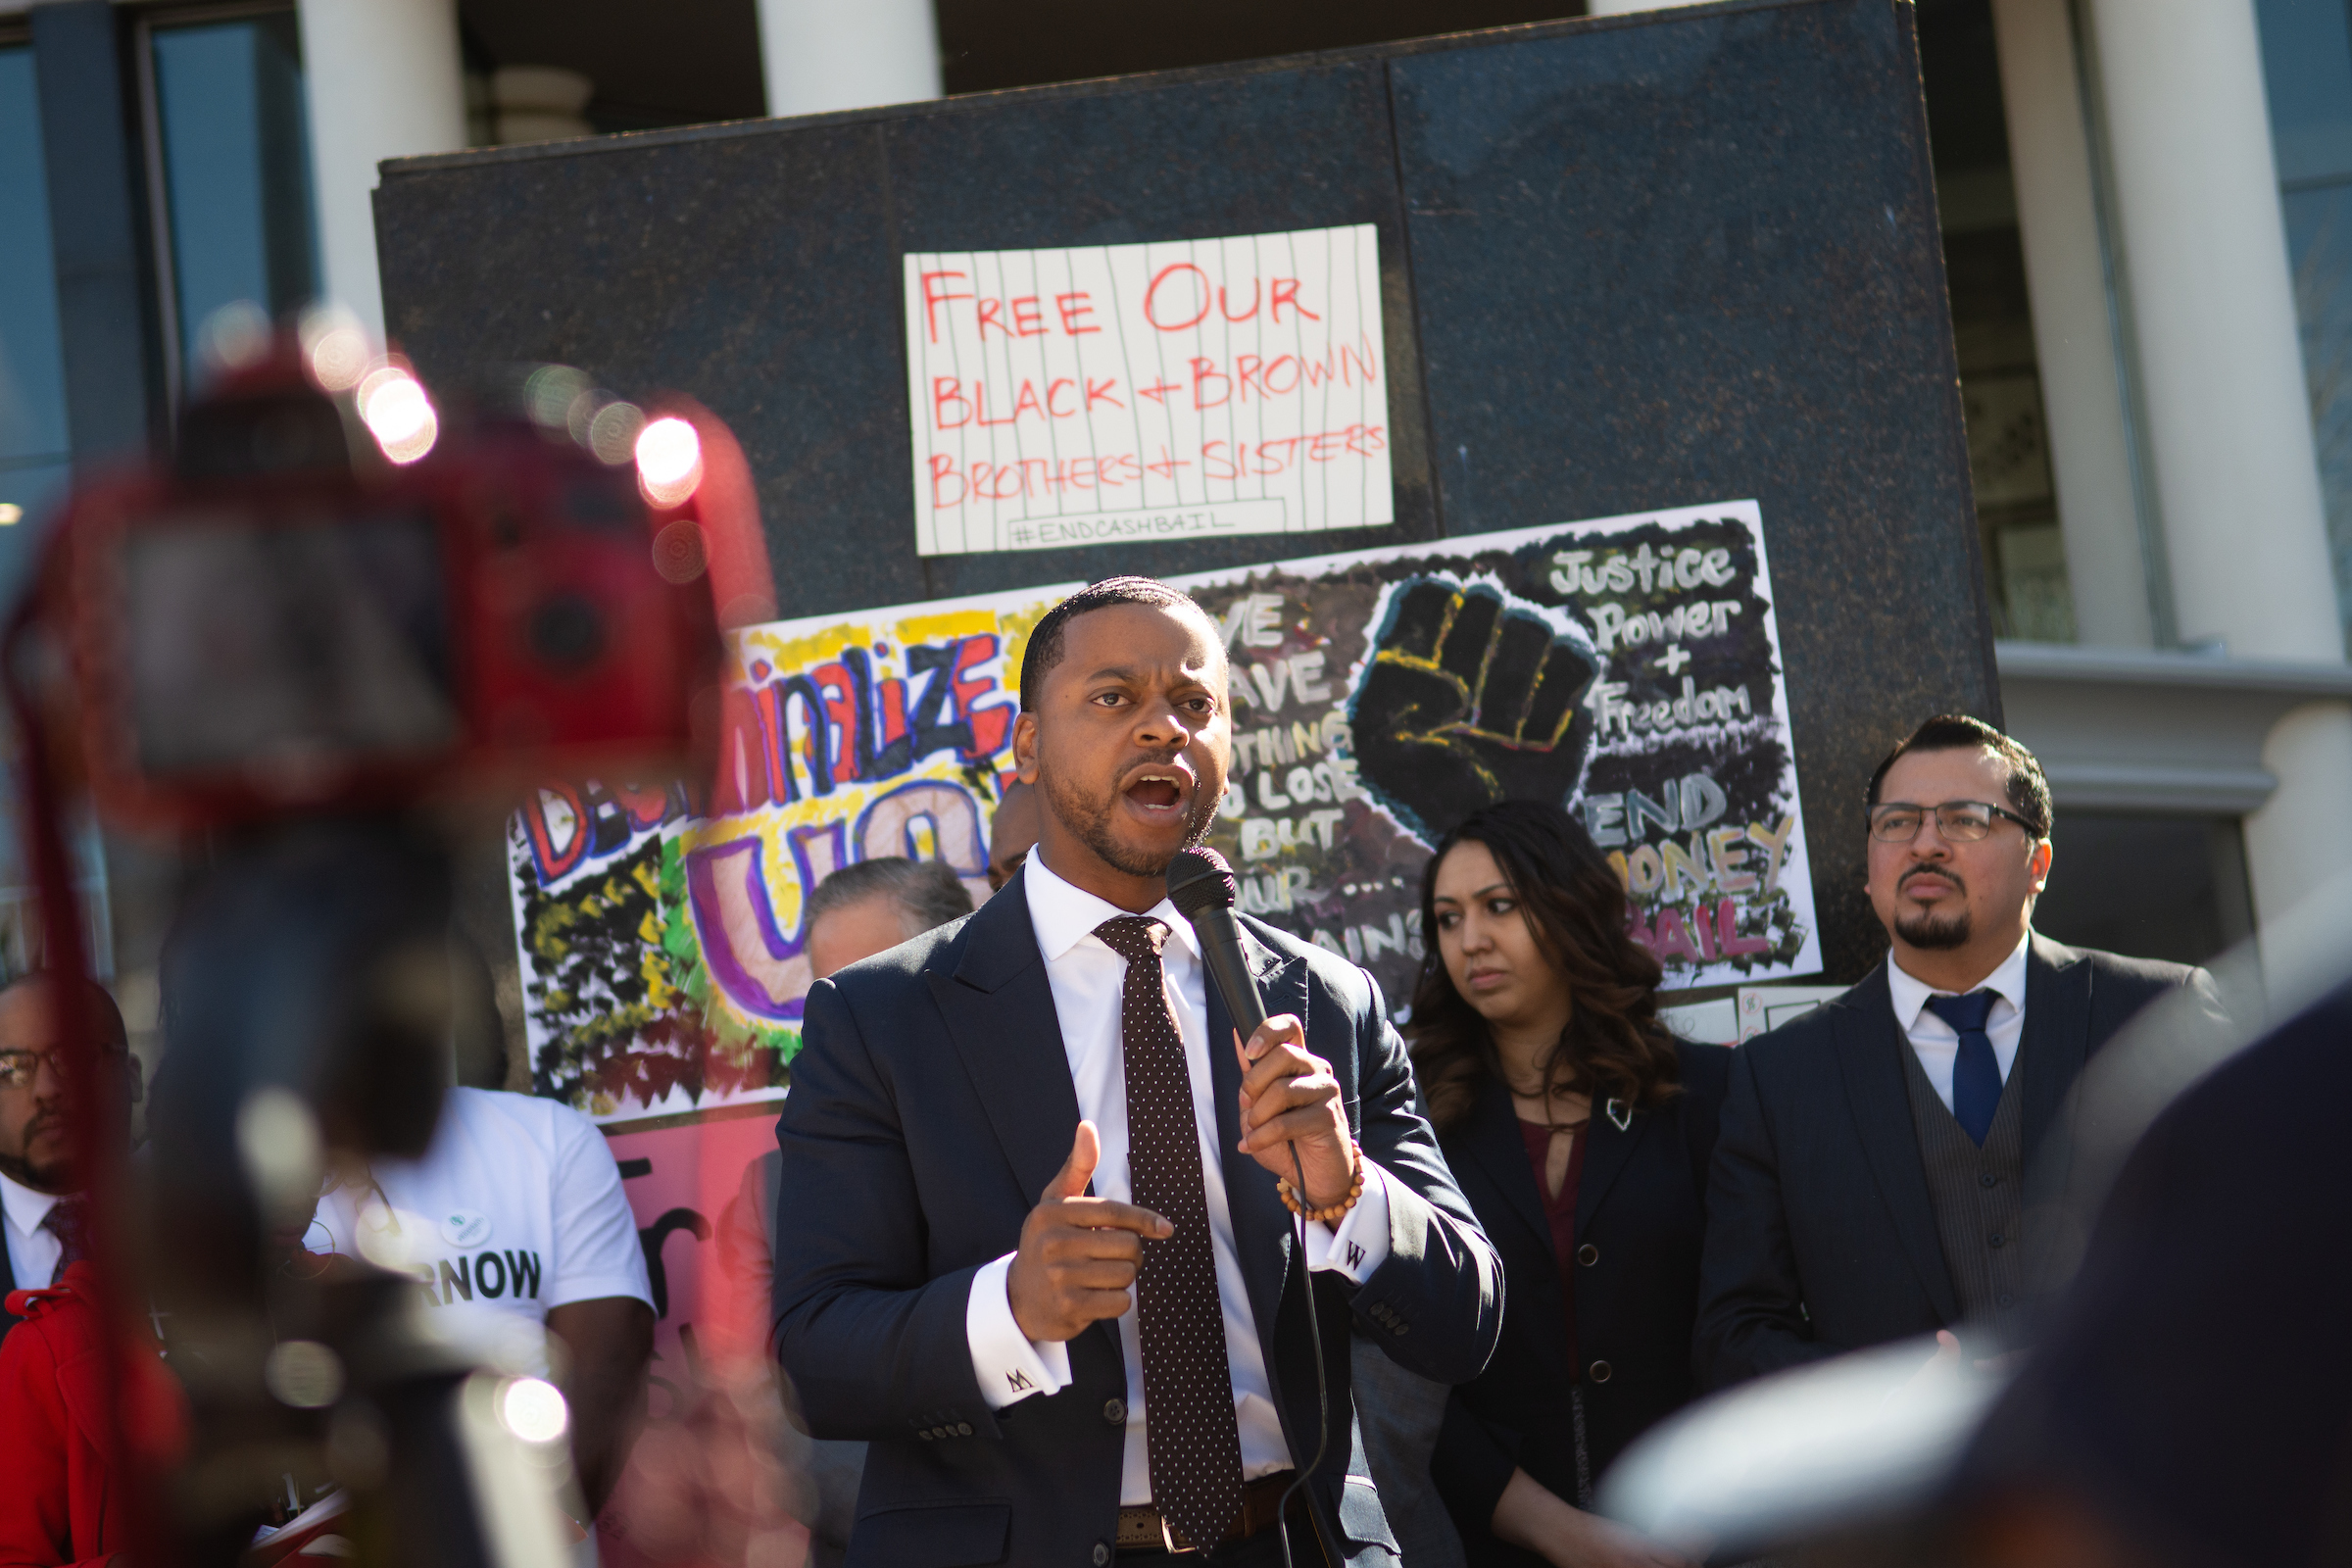 William McCurdy speaking into a microphone during a protest against cash bail outside of the Nevada Legislature